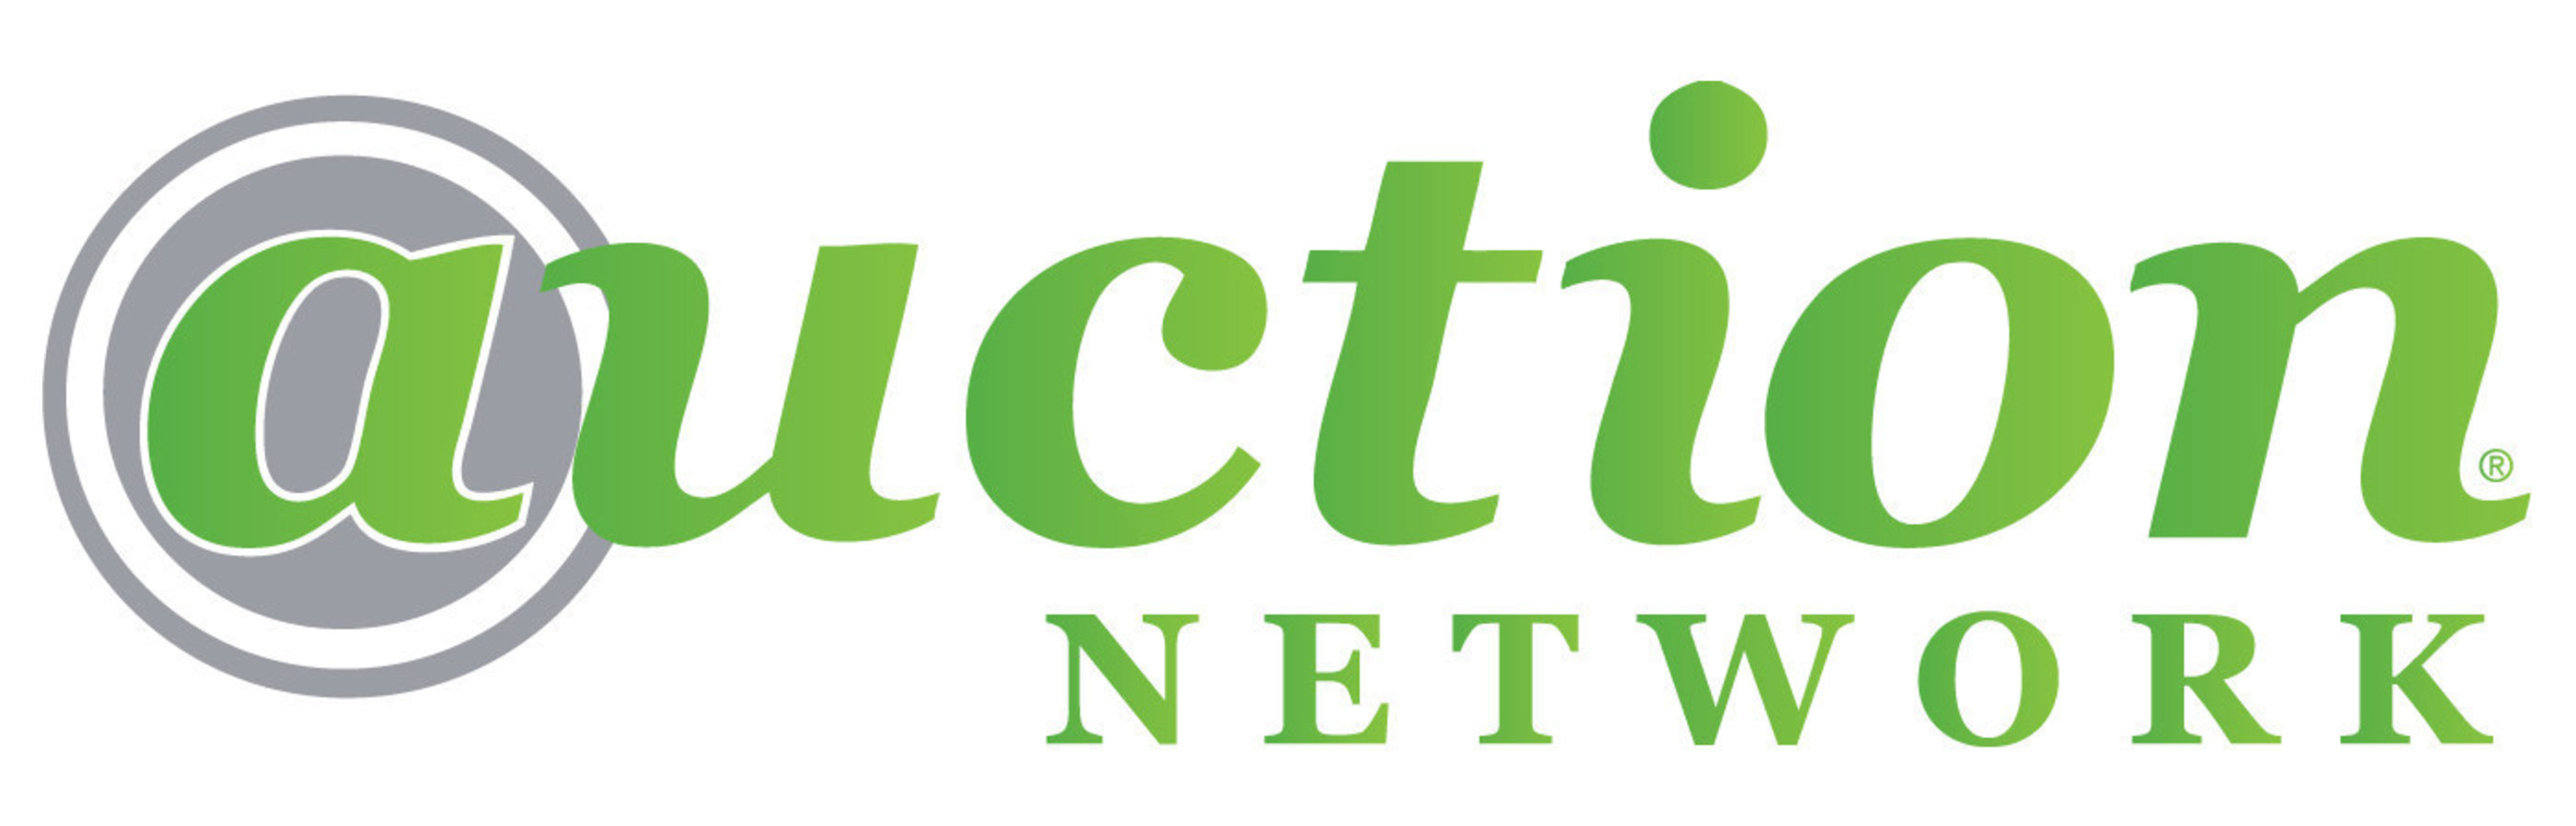 Auction Network(R) (www.auctionnetwork.com) is a 24-hour global broadband television network that merges the ...